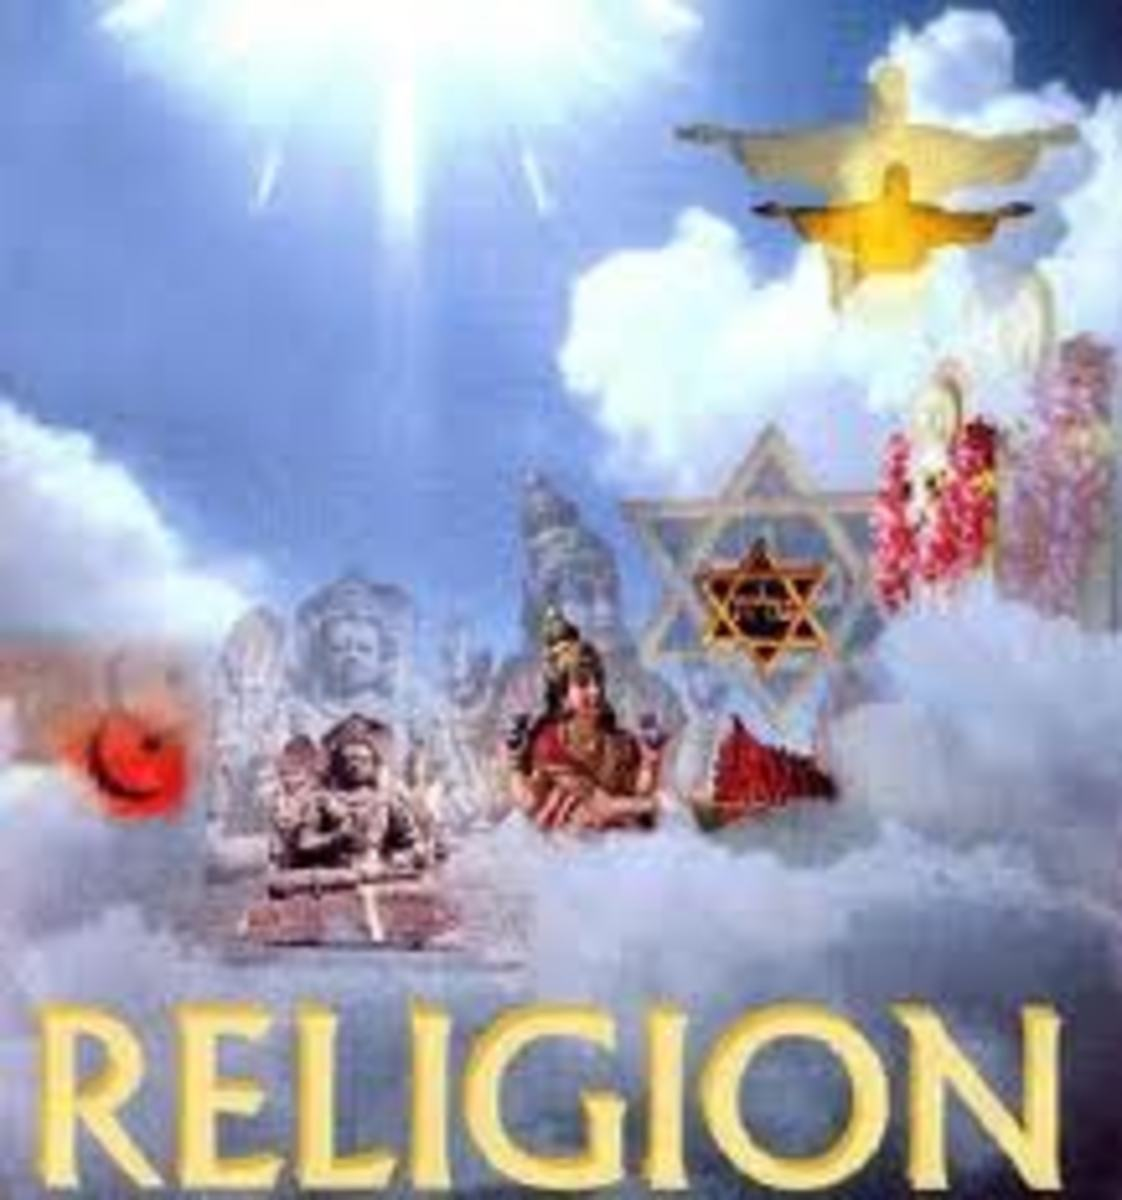 We are talking here about all religions of the world, which to us they seem to have one thing in common to control and guide mankind. to live a meaningful and happy life.